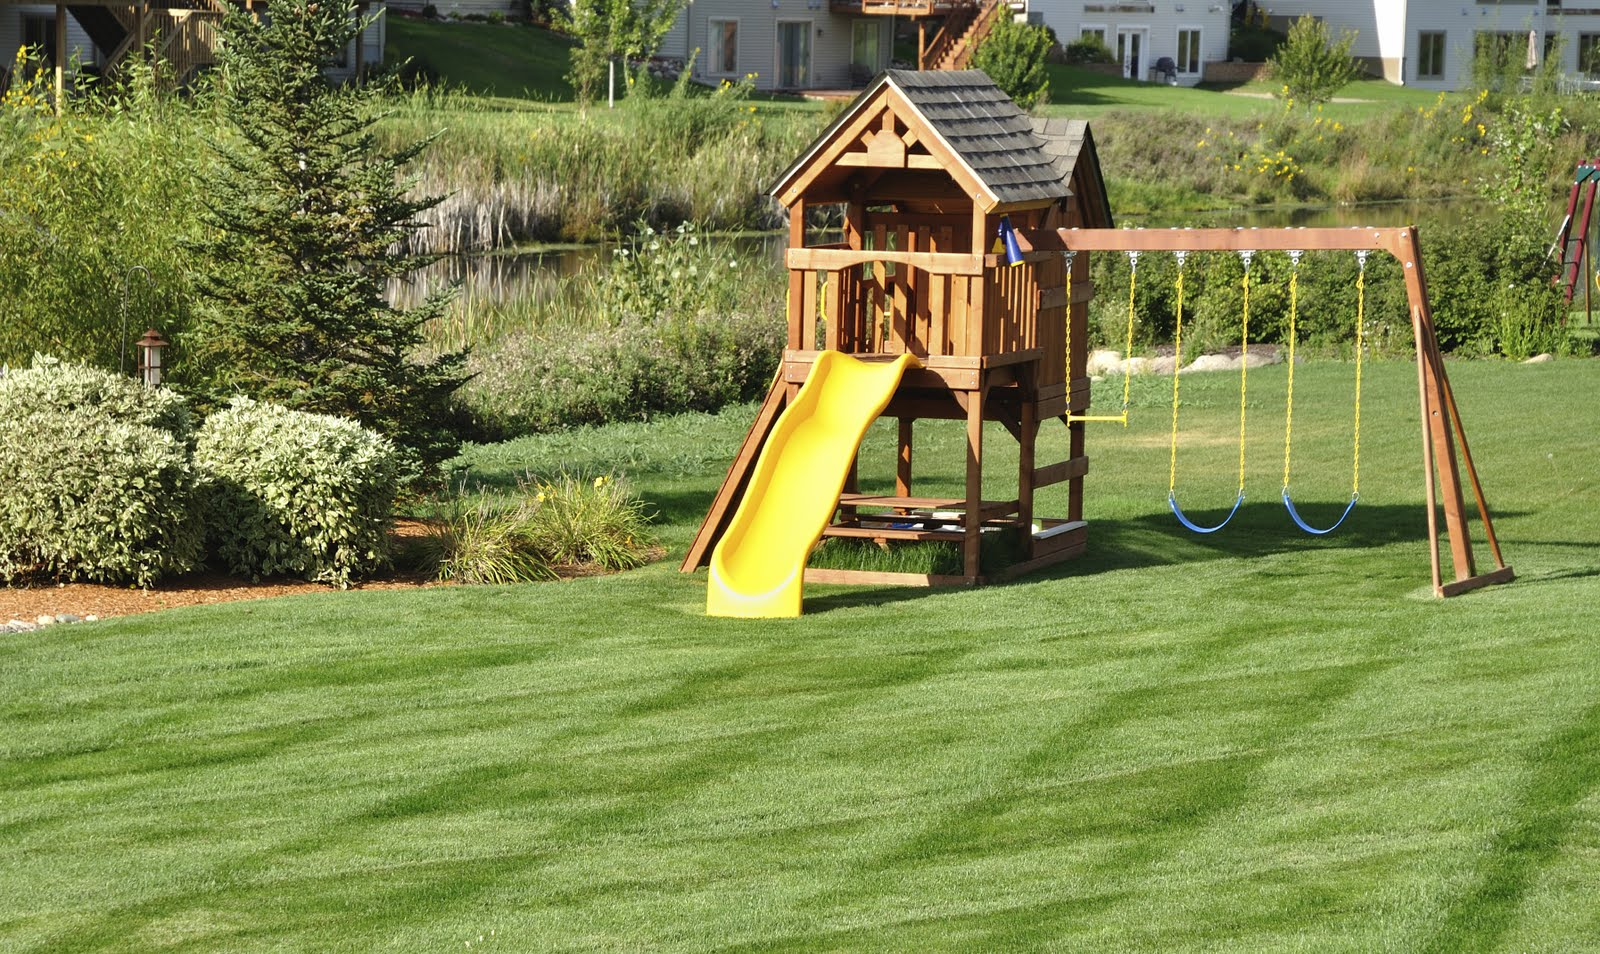 backyard playground safety issues. Black Bedroom Furniture Sets. Home Design Ideas